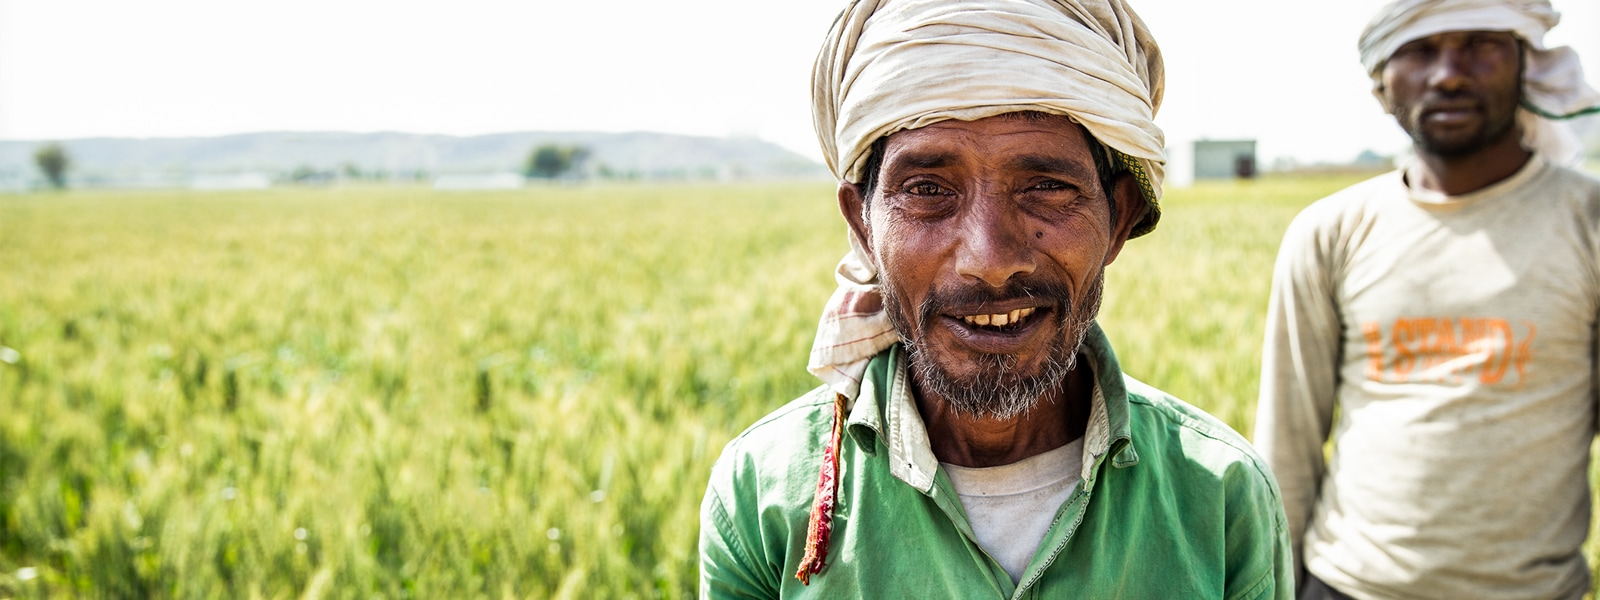 Two Indian farmers smiling in a field